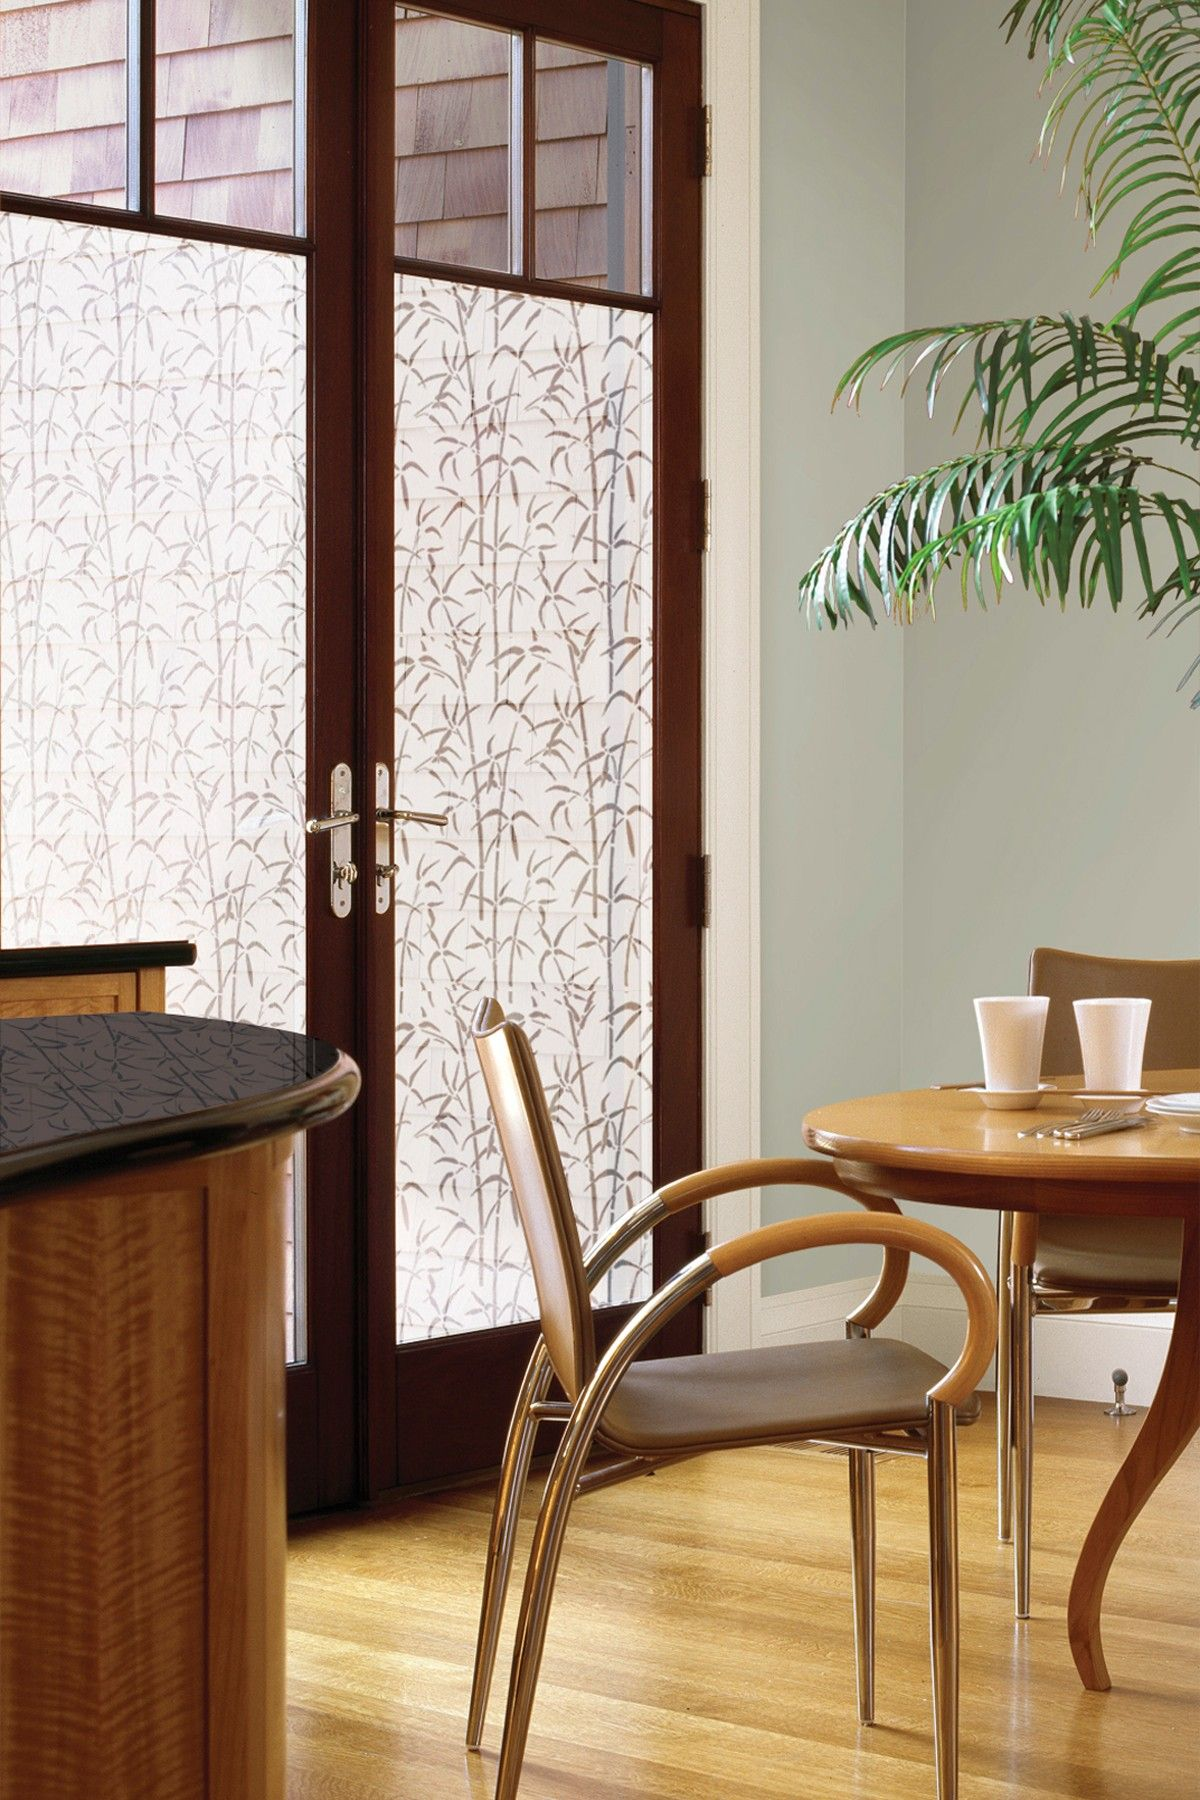 Lakeside Collection Patio Furniture: Static Cling Bamboo Print Door Privacy Film By Brewster